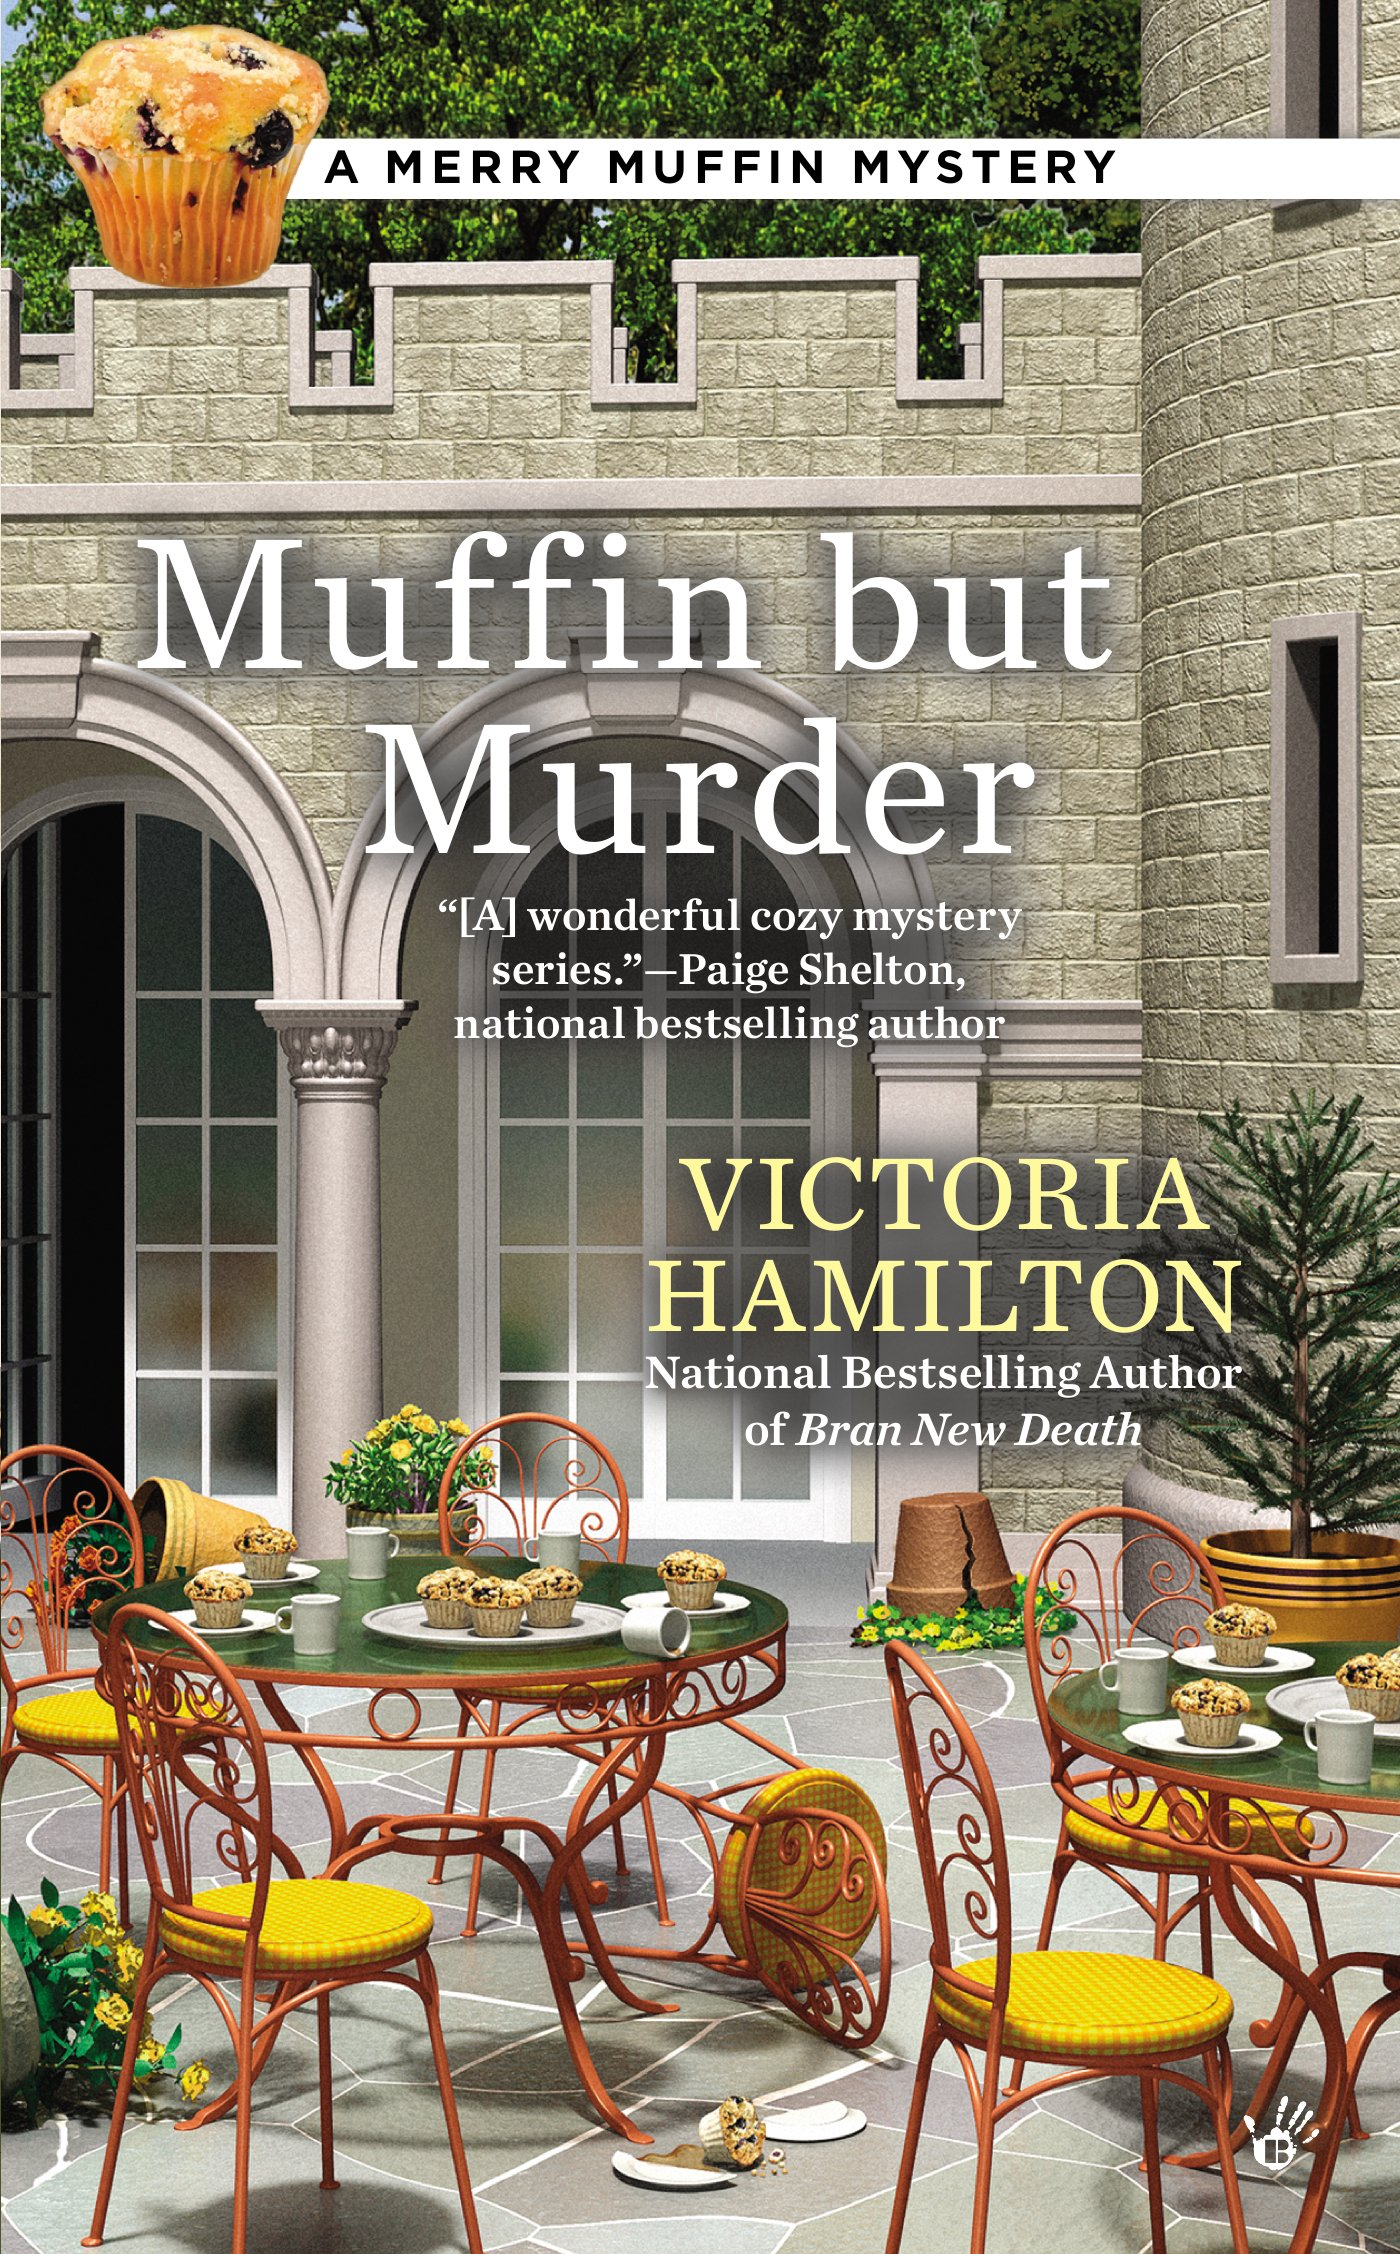 Muffin But Murder Merry Mystery product image